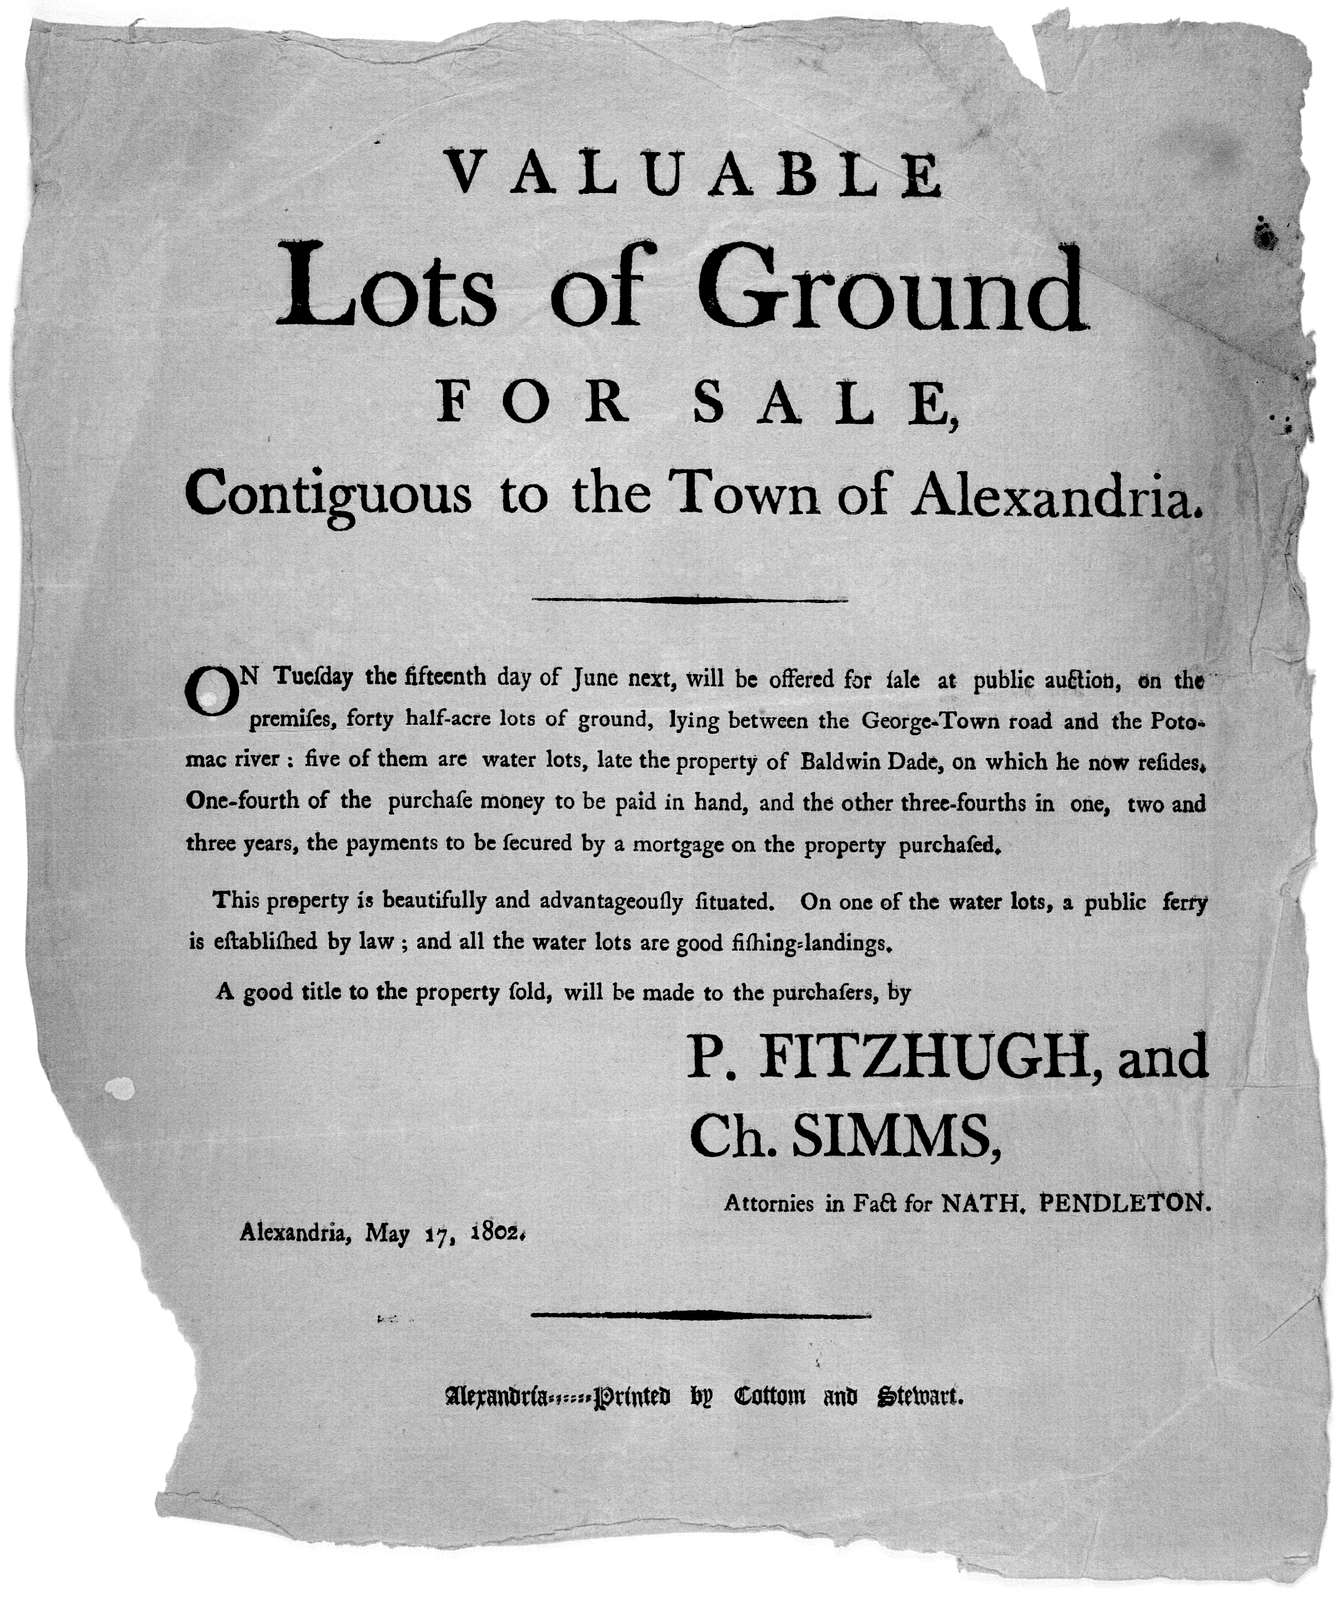 Valuable lots of ground for sale, contiguous to the town of Alexandria. On Tuesday the fifteenth day of June next, will be offered for sale at public auction, on the premises, forty half-acre lots of ground, lying between the George-Town road an